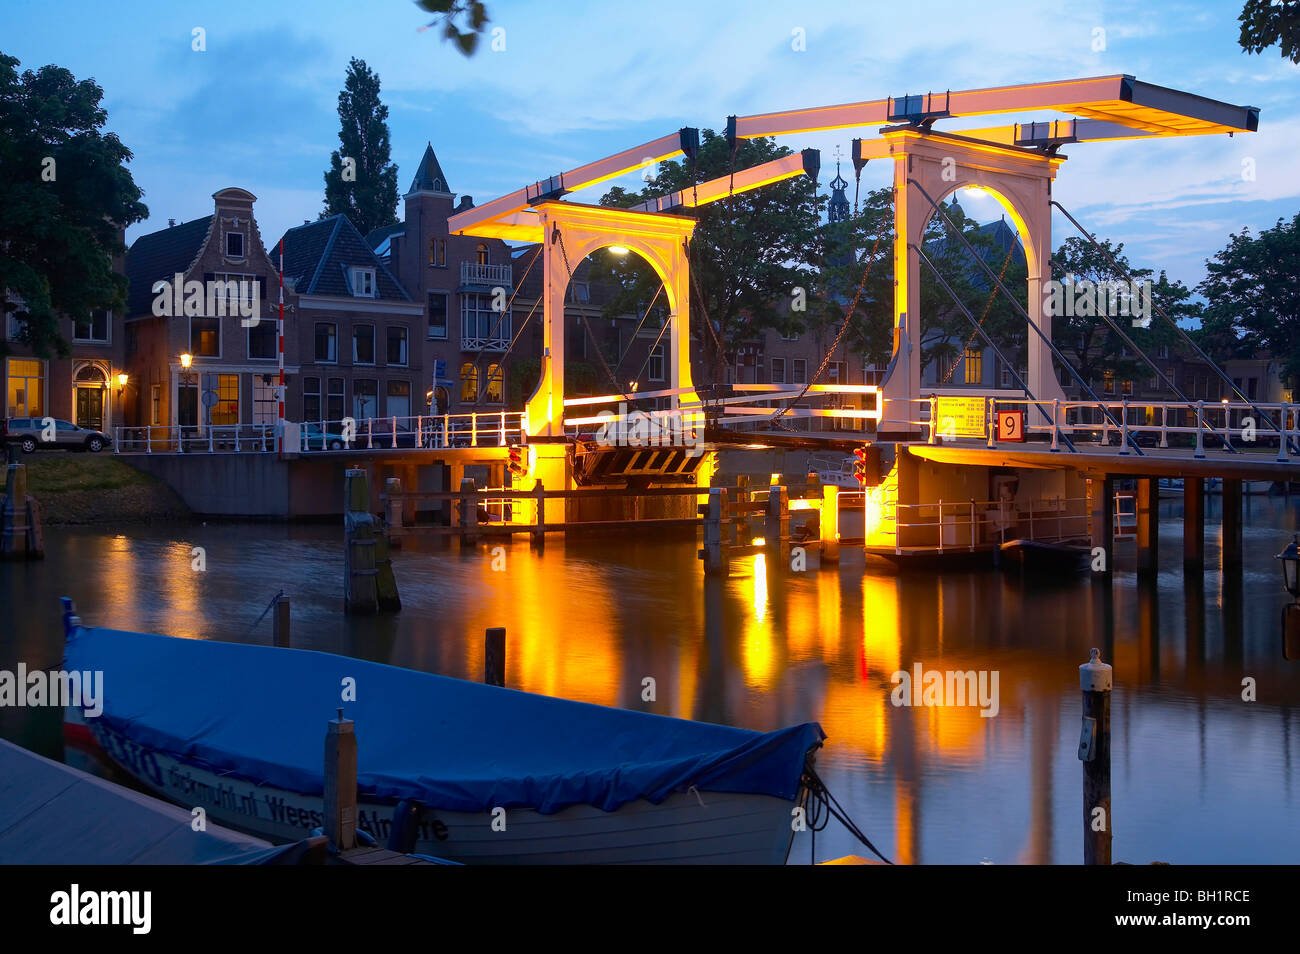 View at a bascule bridge at the river Vecht in the evening, Weesp, Netherlands, Europe - Stock Image